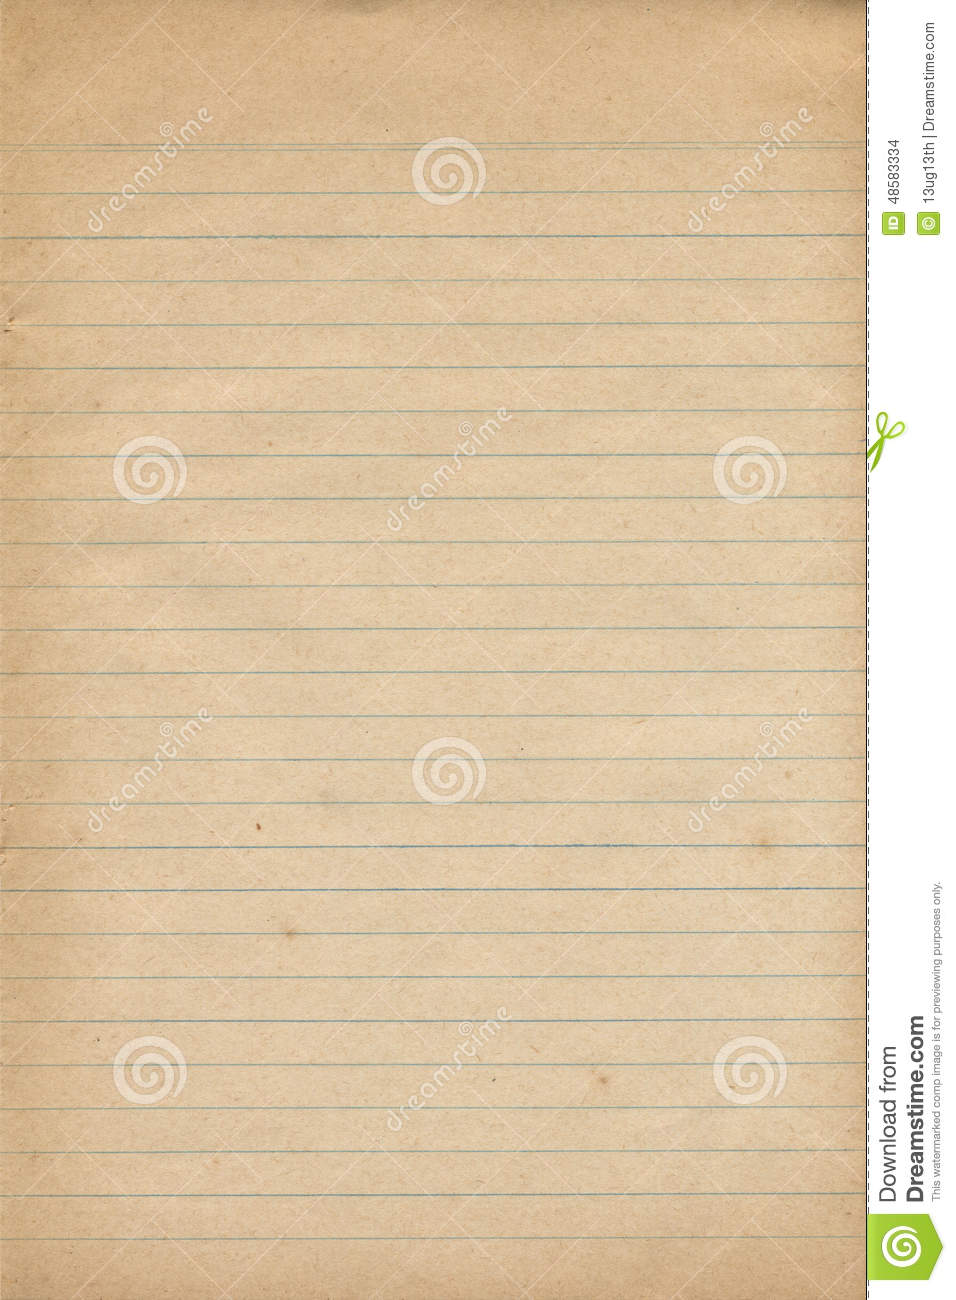 old notebook paper texture stock photo image of empty